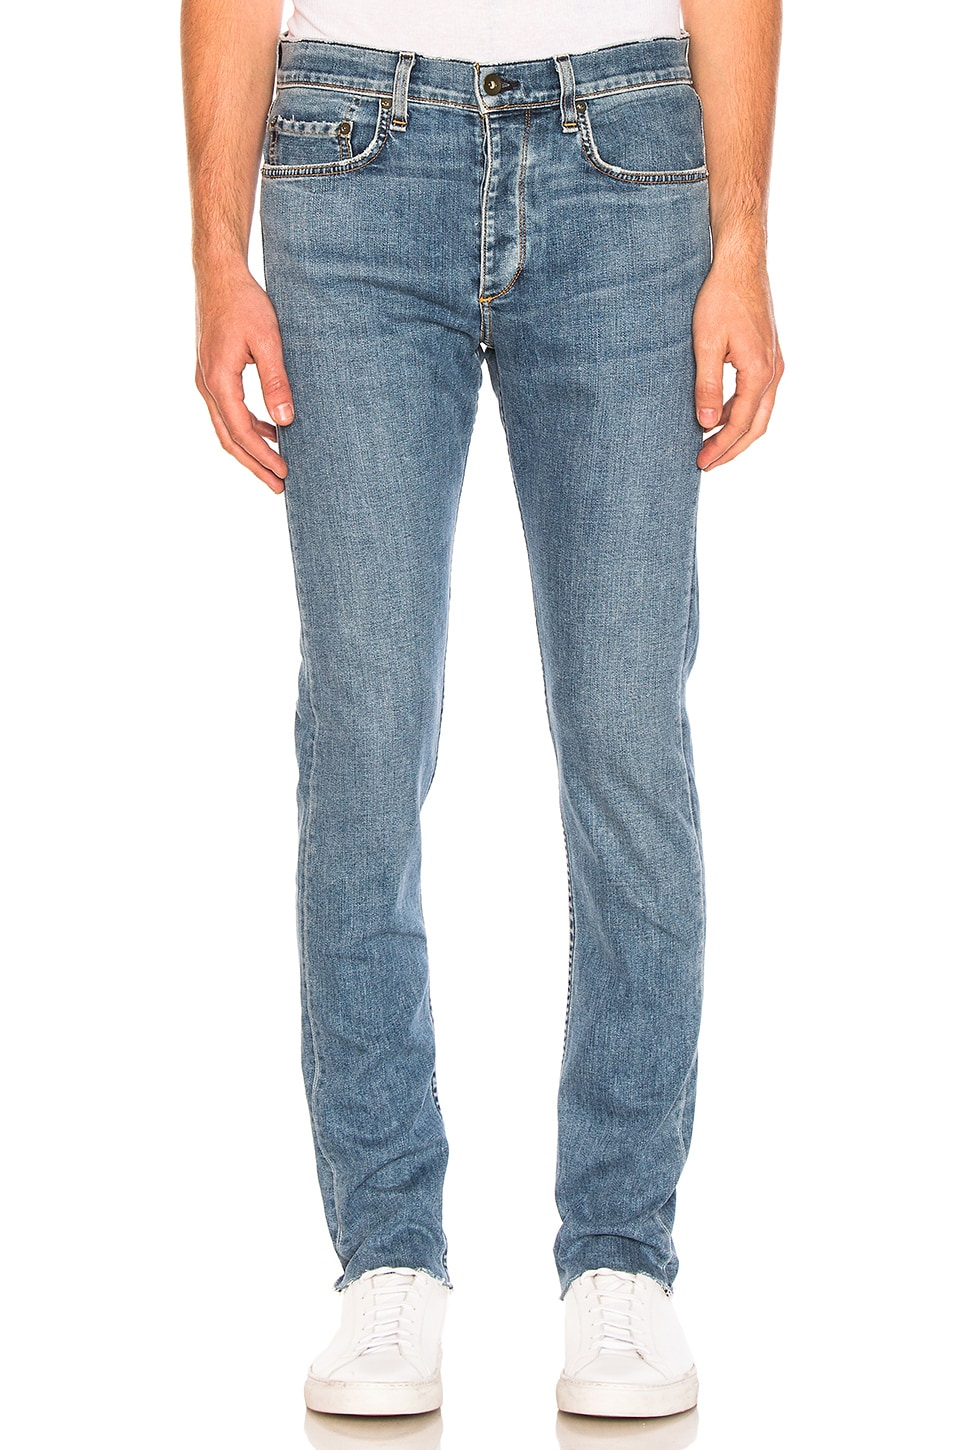 Standard Issue Fit 2 Jeans by Rag & Bone